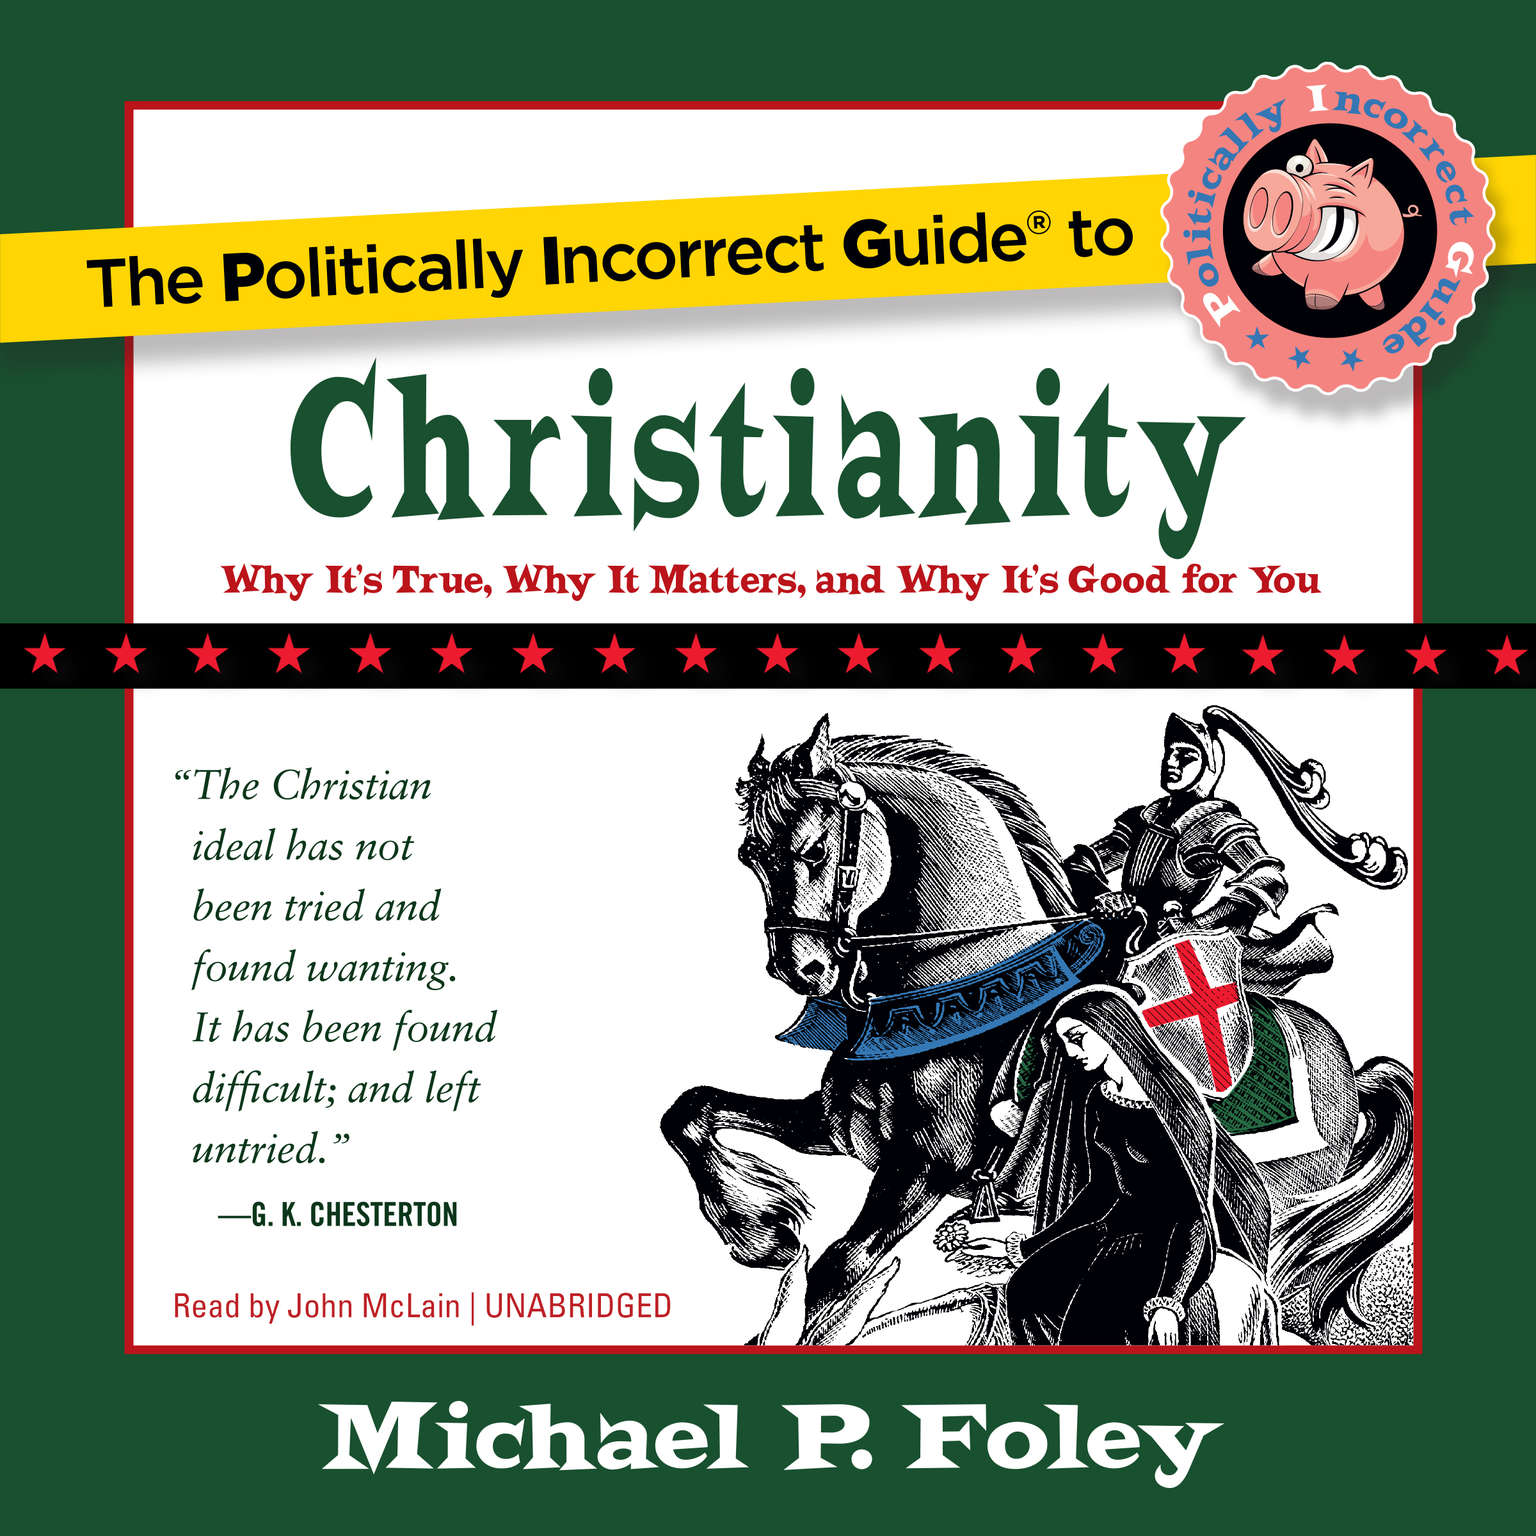 The Politically Incorrect Guide to Christianity: Why It's True, Why It Matters, and Why It's Good for You Audiobook, by Michael P. Foley